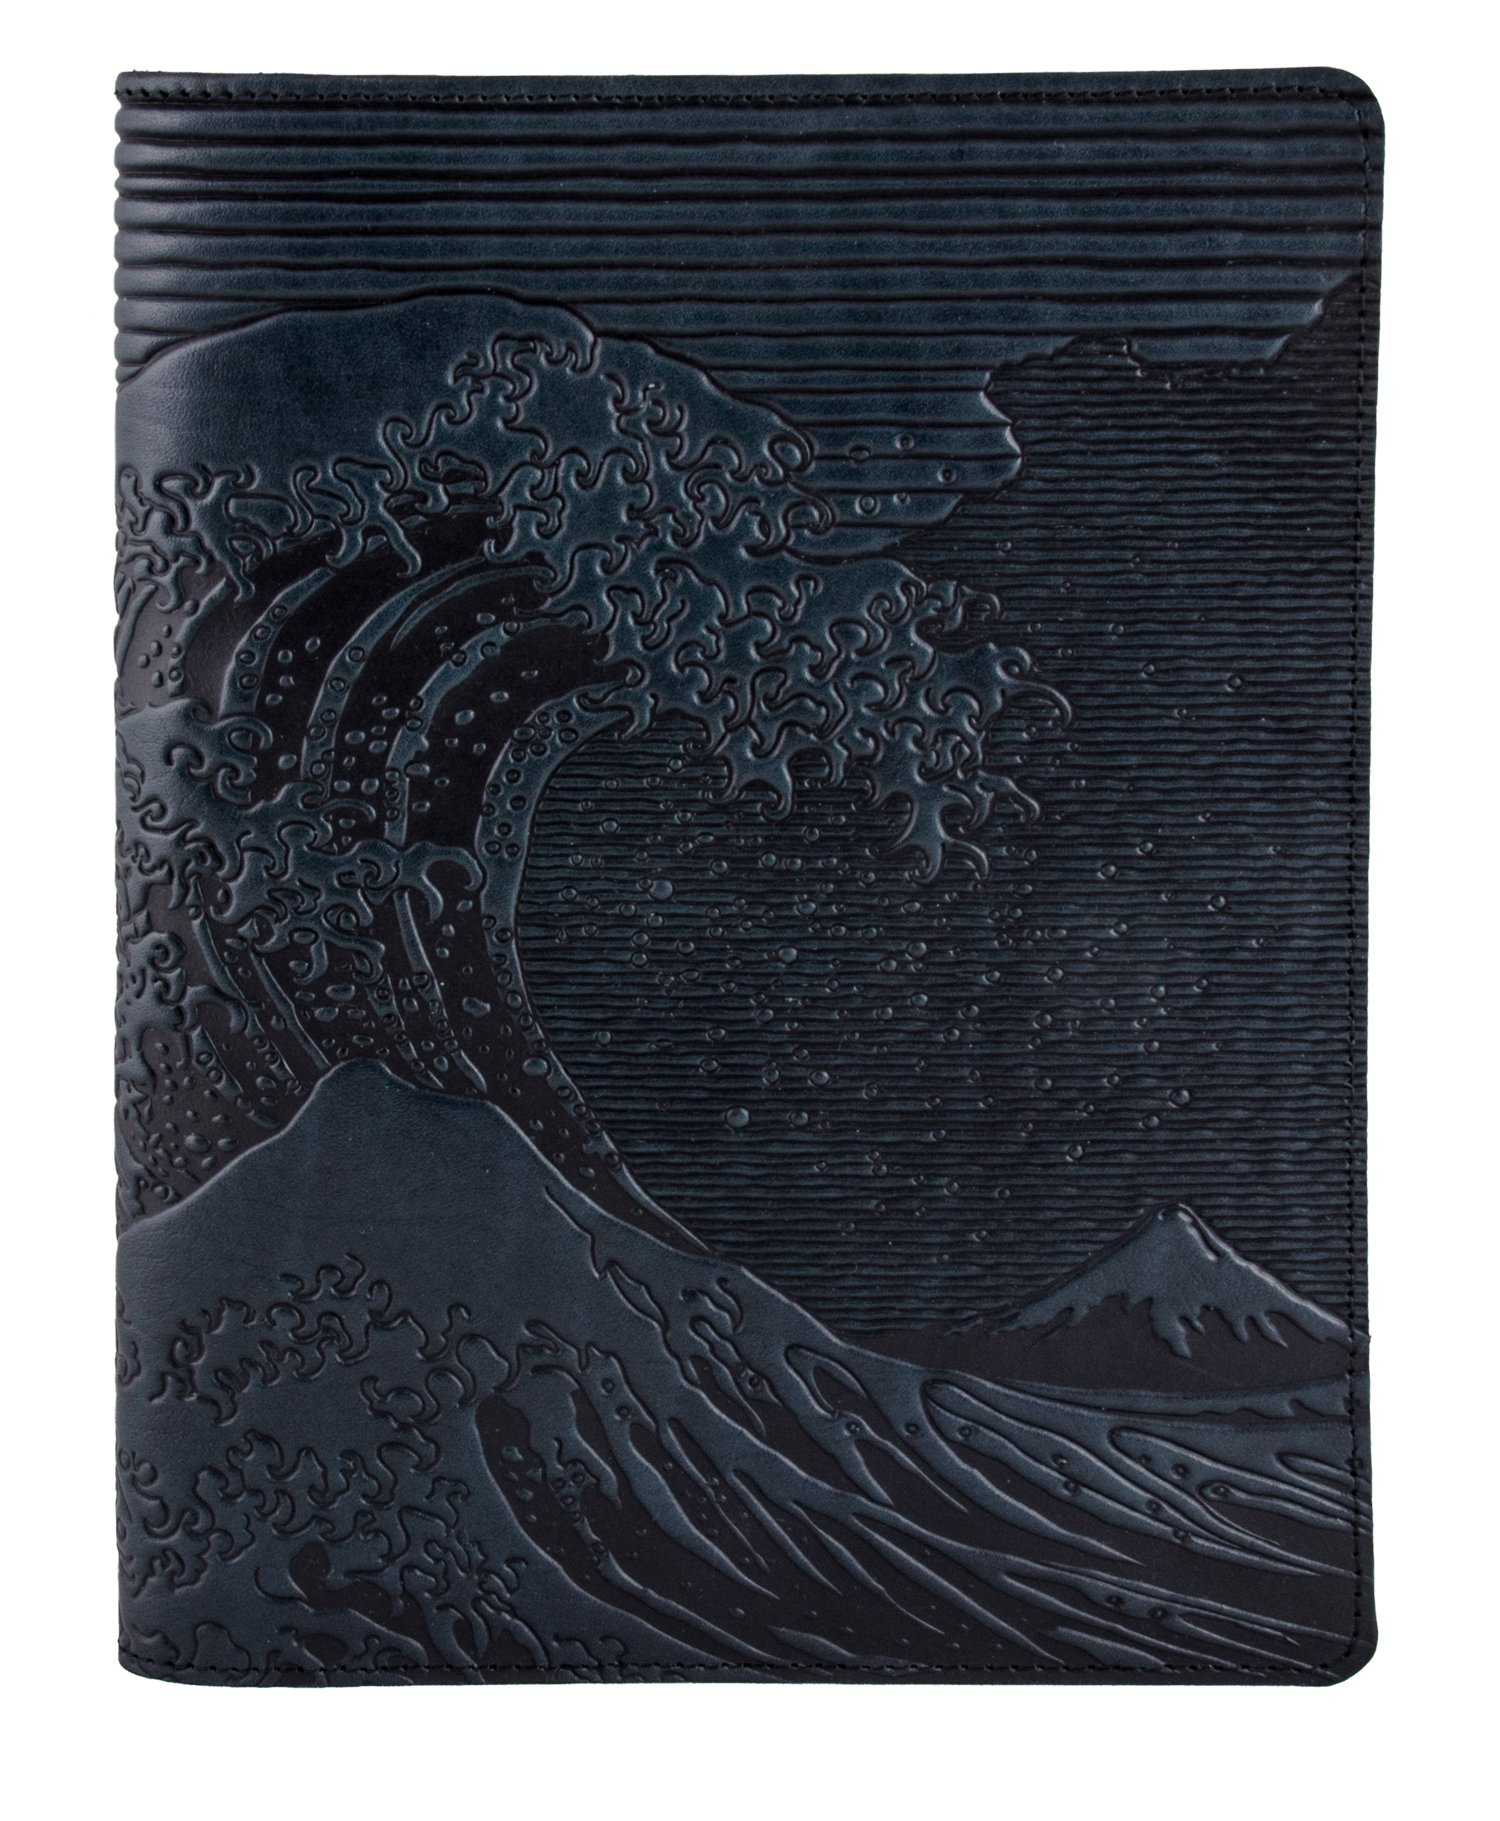 Genuine Leather Composition Notebook Cover + Insert - 8.25 x 10.25 Inches - Hokusai Wave, Navy - Benchcrafted in the USA by Oberon Design